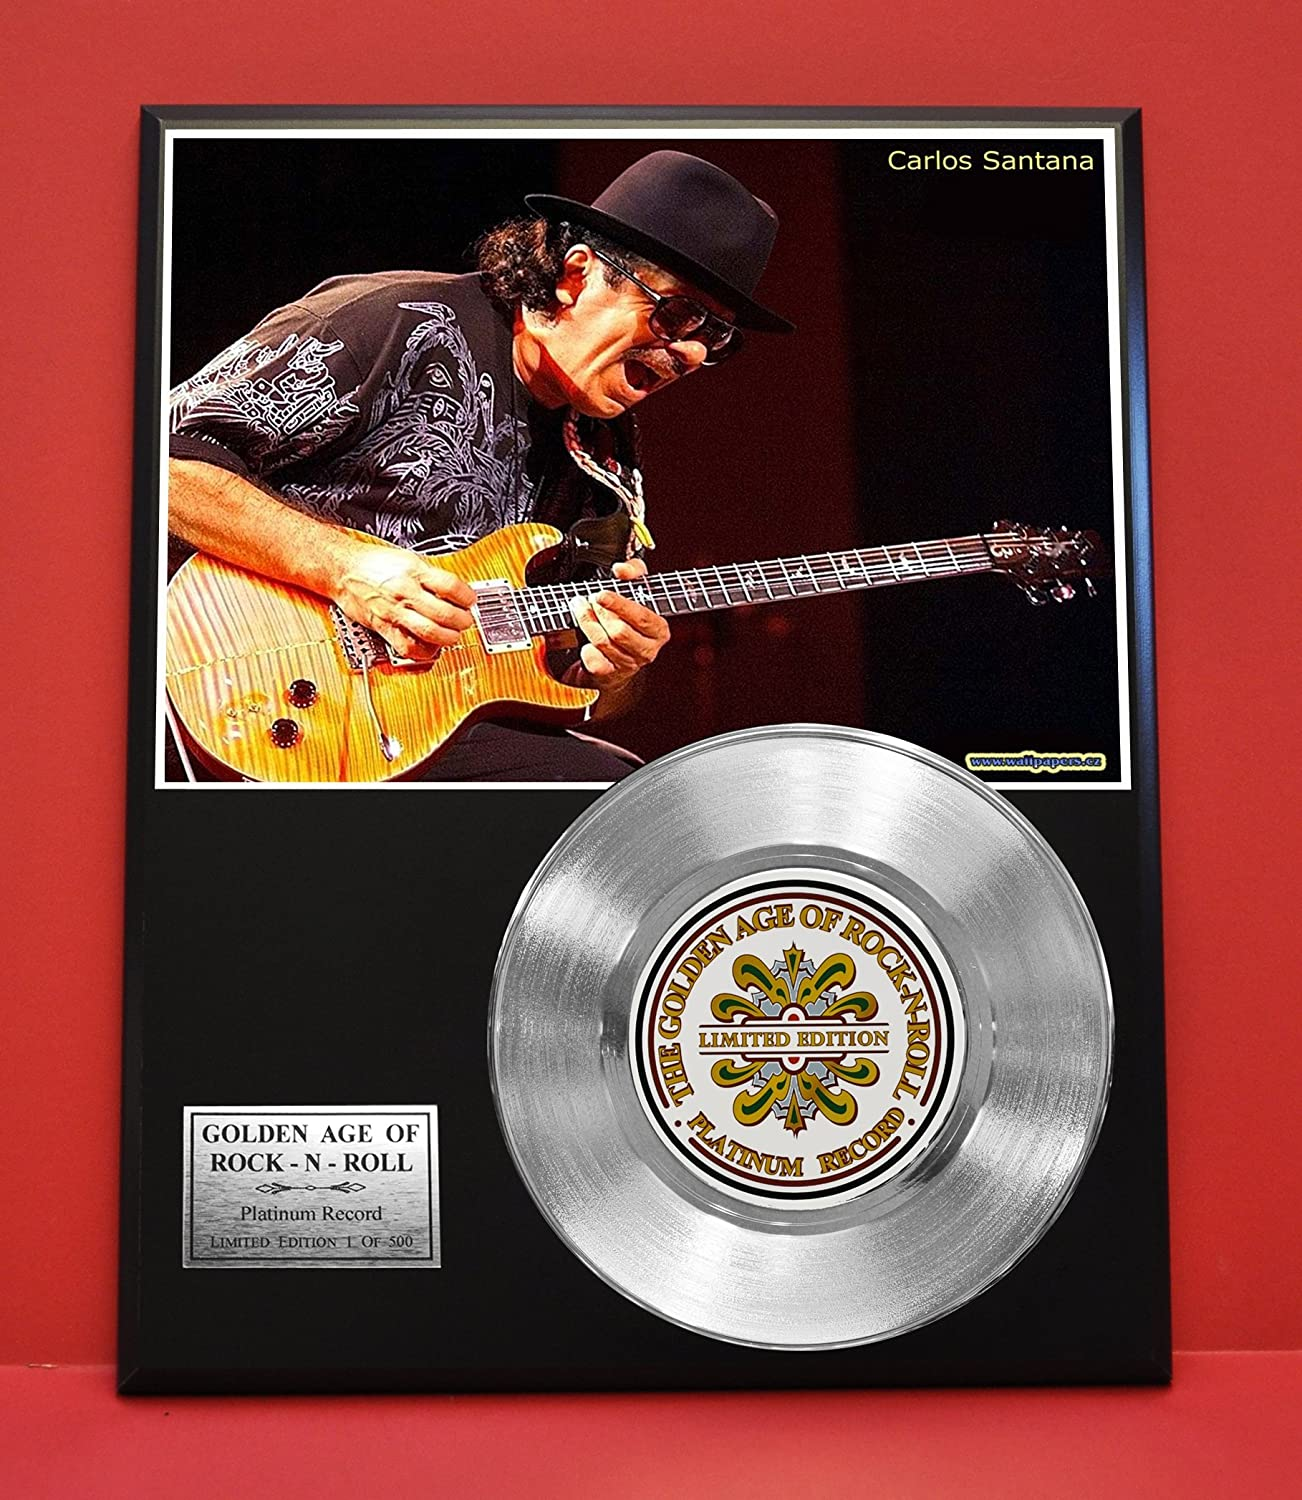 Santana Limited Edition Non Riaa Platinum Record Display - Award Quality Music Memorabilia Wall Art new mf8 eitan s star icosaix radiolarian puzzle magic cube black and primary limited edition very challenging welcome to buy